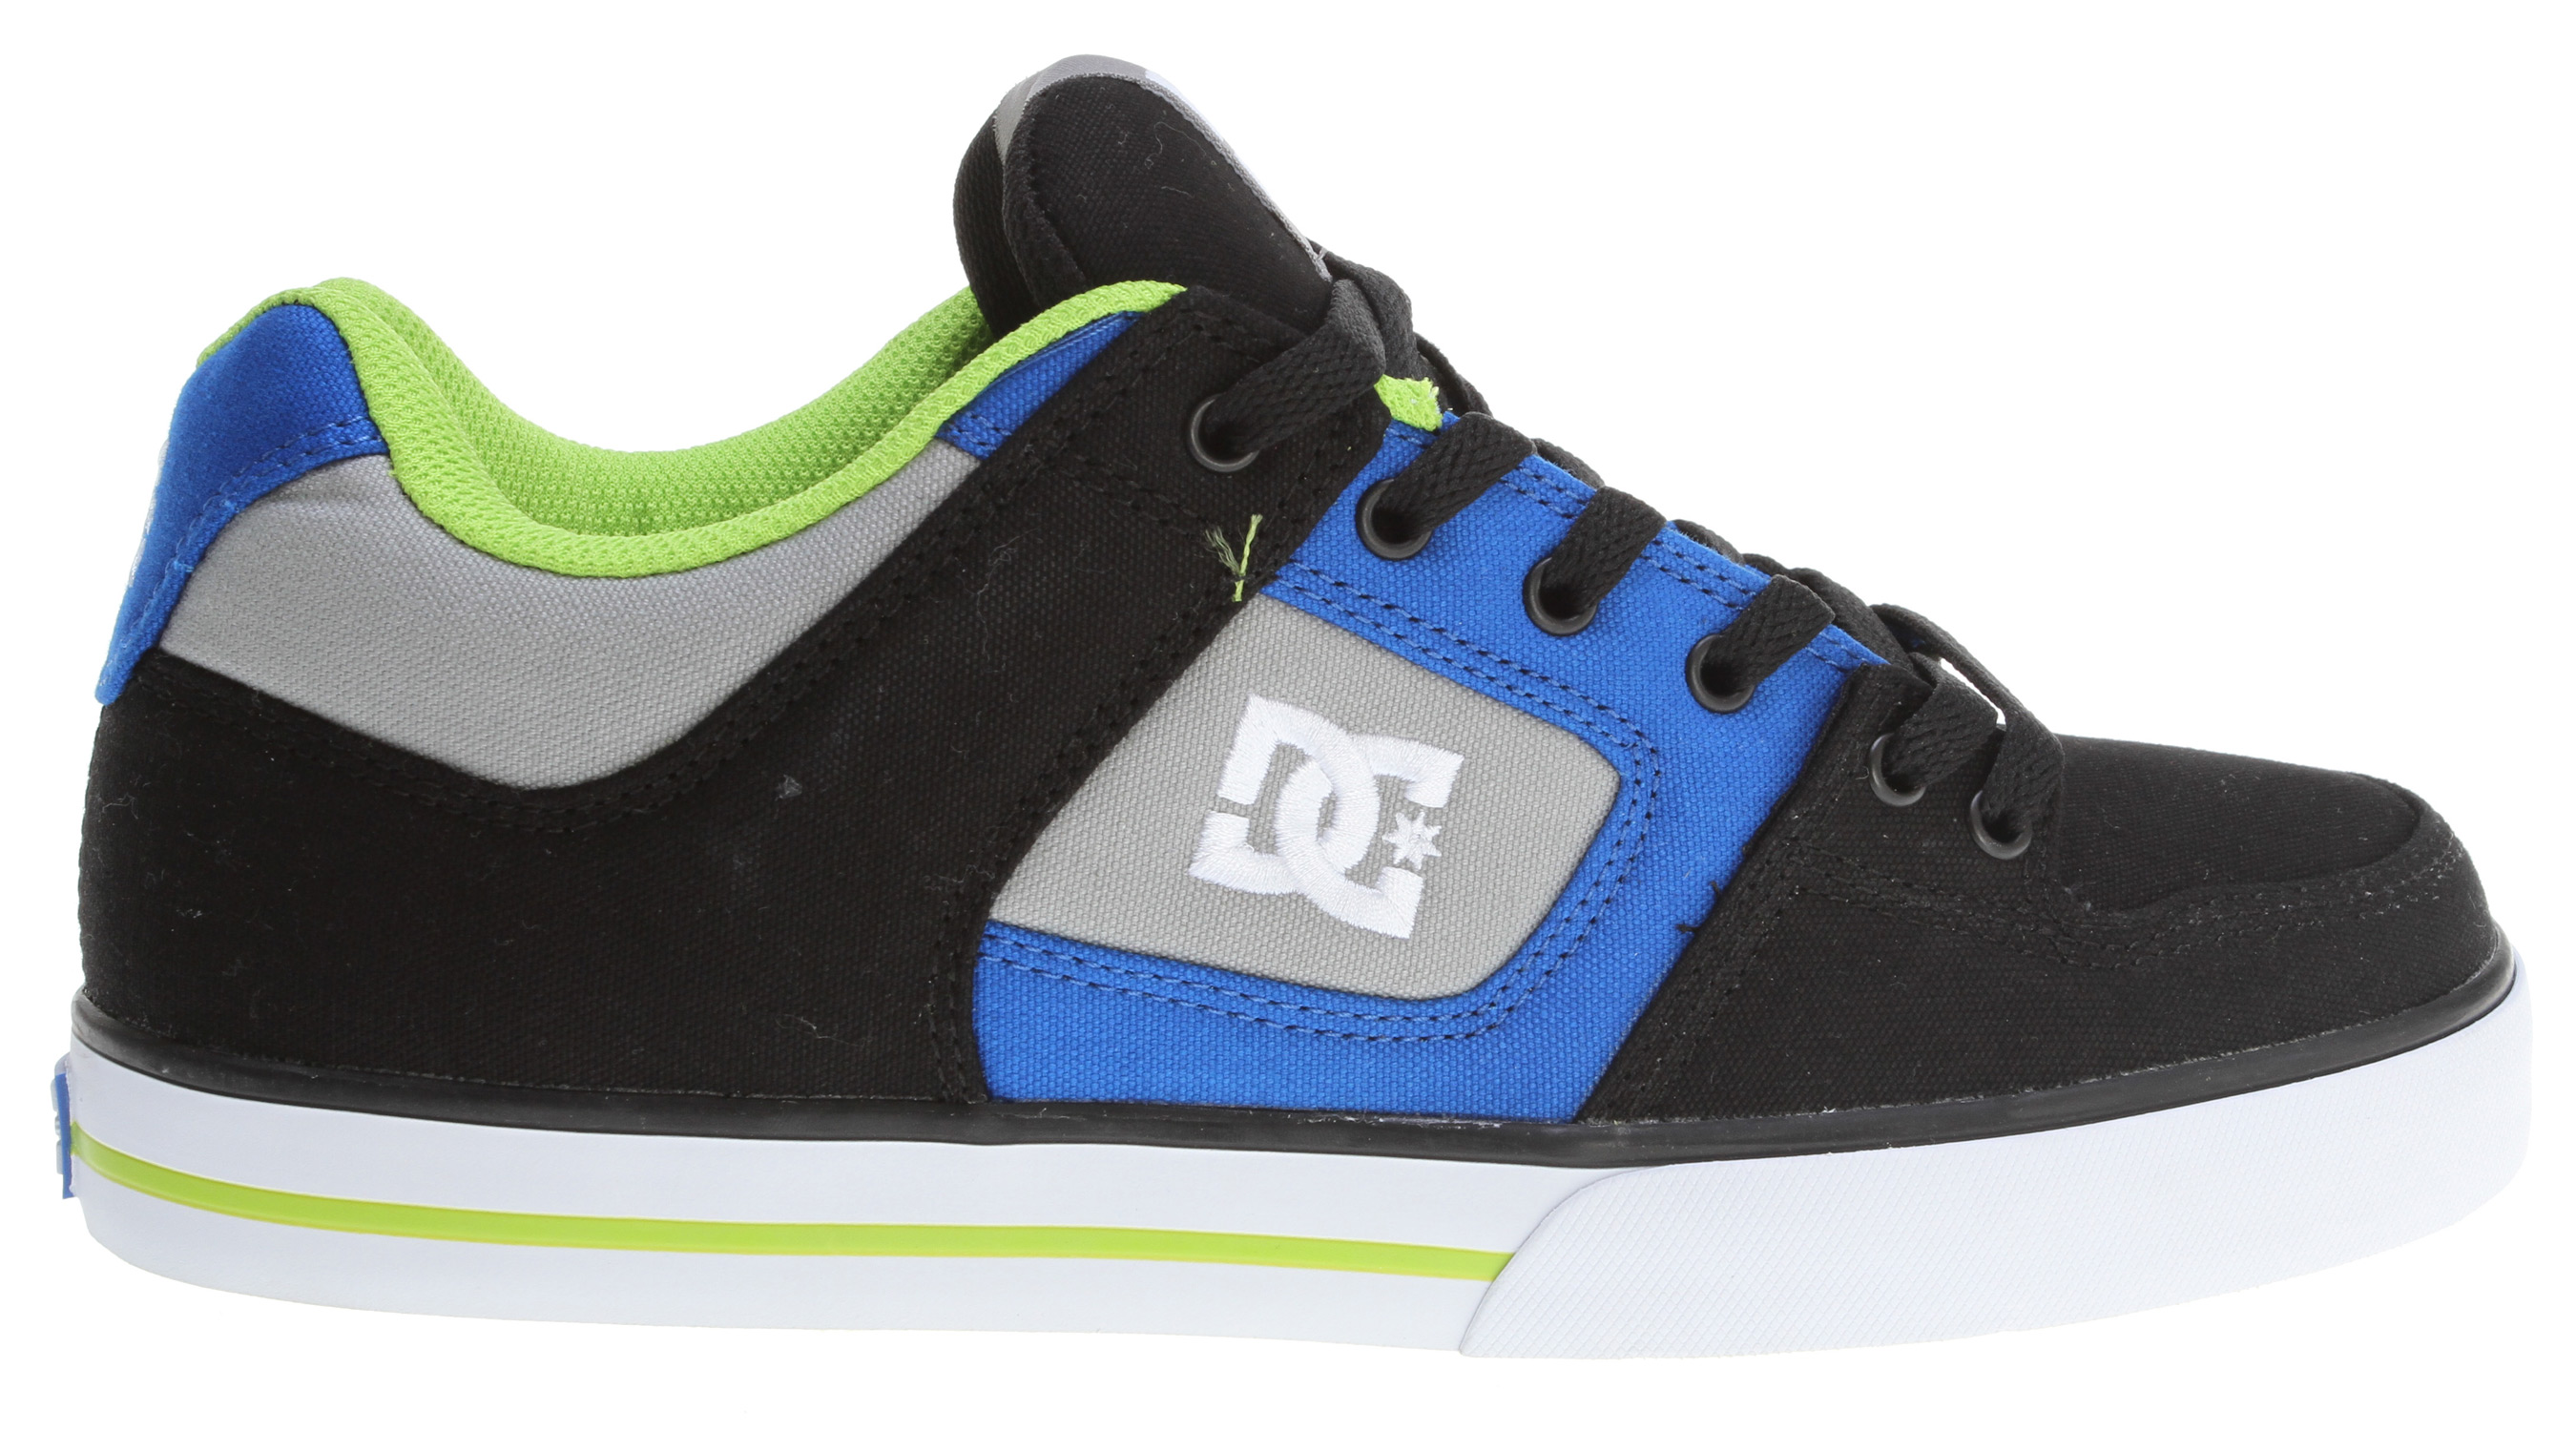 "Skateboard Key Features of the DC Pure TX Skate Shoes: All Canvas Upper Foam Padded Tongue And Collar For Added Comfort And Support Vent Holes In Upper For Breathability Metal Eyelets Performance Wrap Cup Sole, Our Exclusive Construction Technique DGT - Dynamic Grip Technology Abrasion-Resistant Sticky Rubber Outsole With DC's Trademarked ""Pill Pattern"" Bottom. - $35.95"